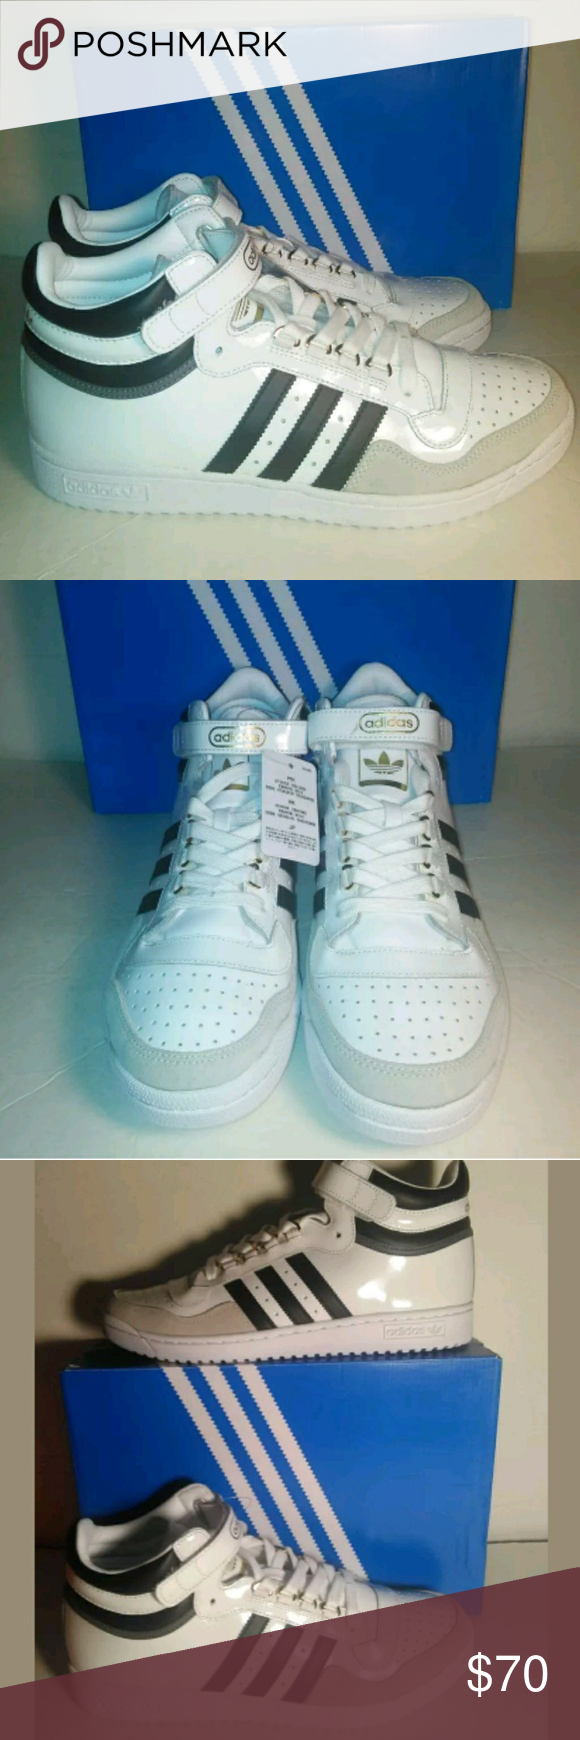 size 40 42dbd 786ac Adidas Concord II Mid Casual Shoes Men Size 8 Adidas Concord II Mid Casual  Shoes WhiteBlackGold BB8778 Men Size 8 adidas Shoes Sneakers